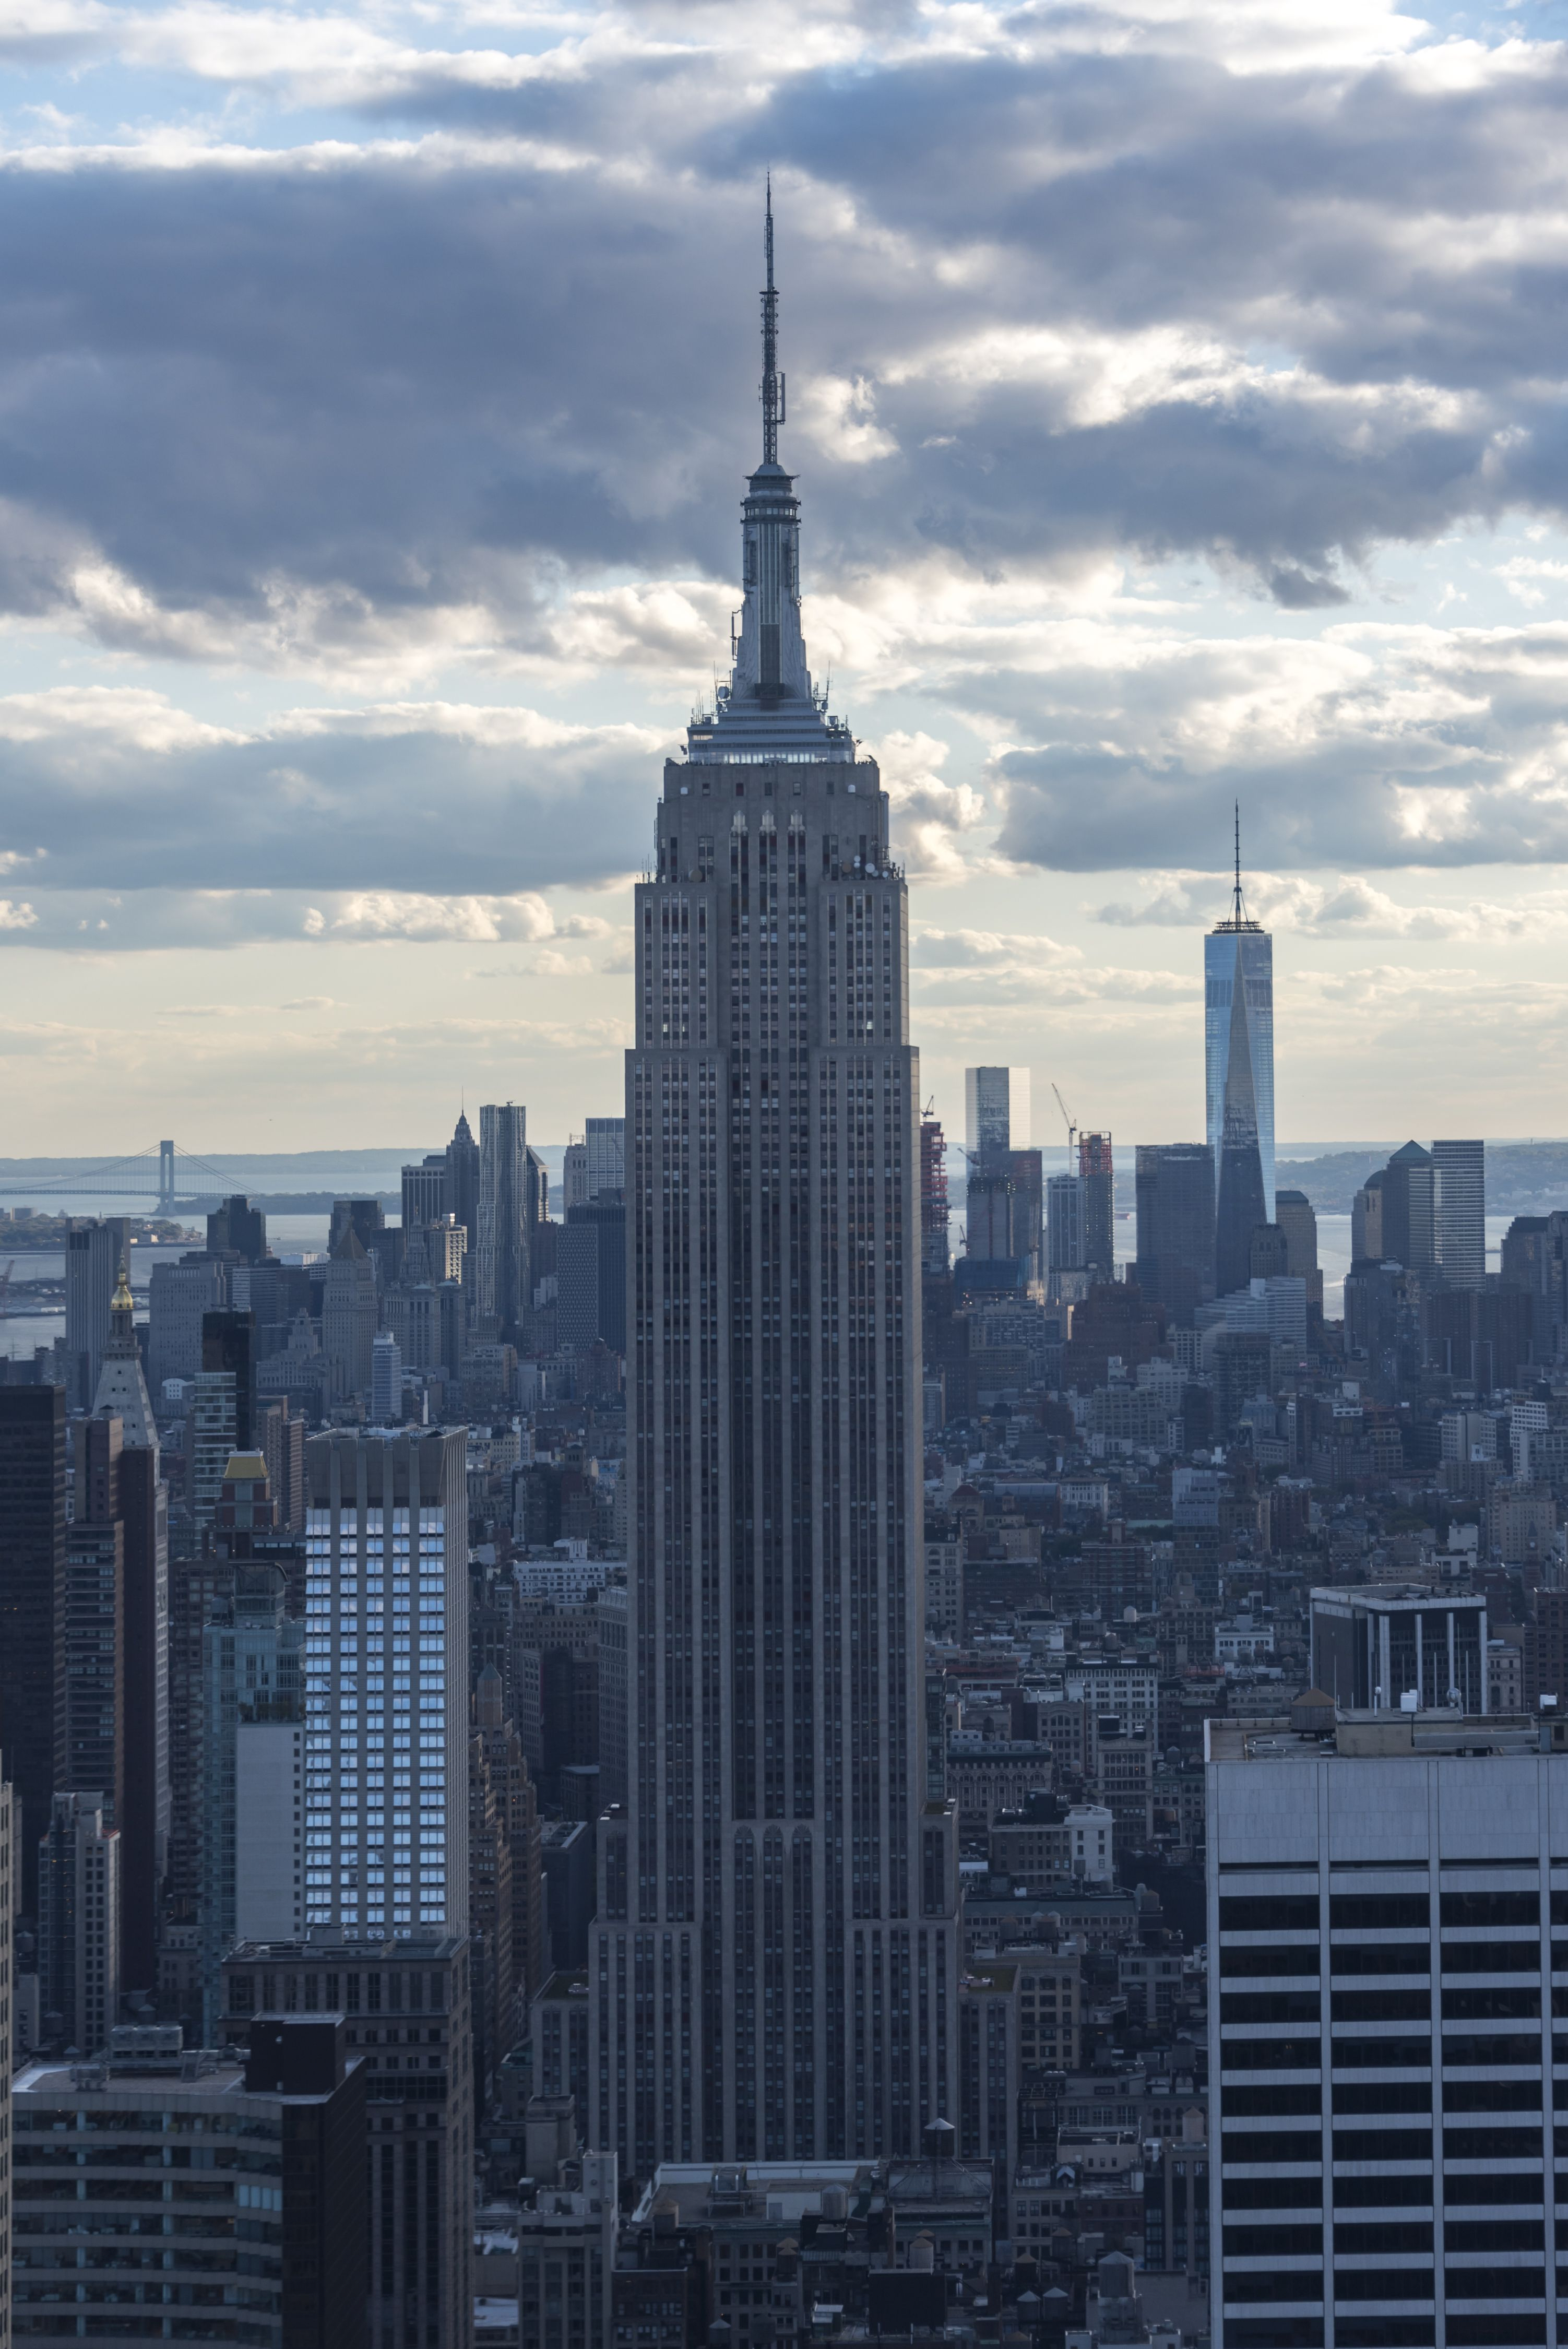 New York tours and attractions: Empire state building in New...